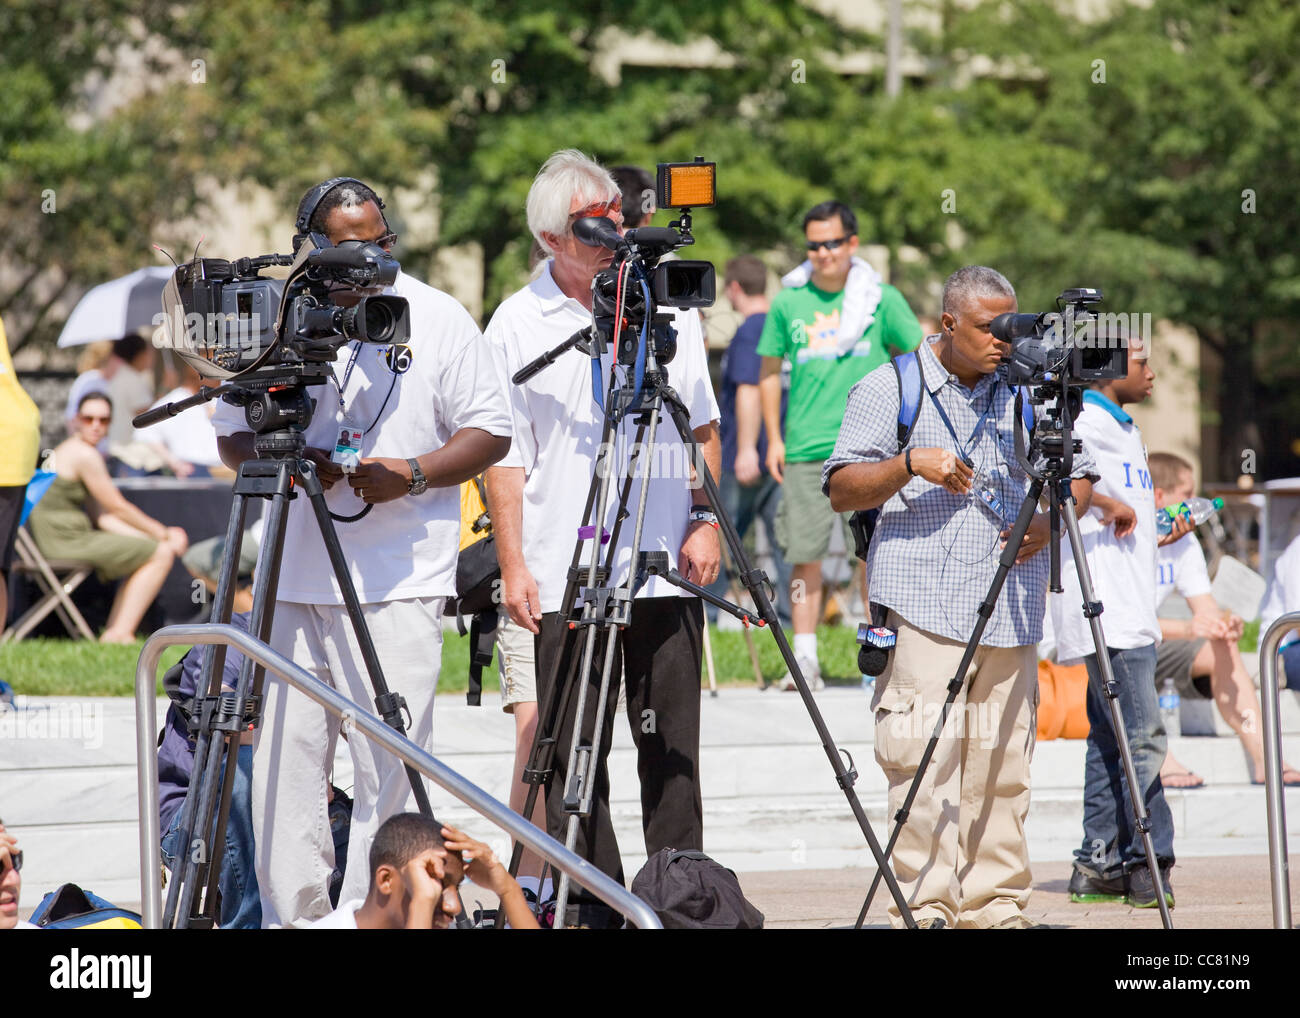 News cameramen lined up at an outdoor event - USA - Stock Image